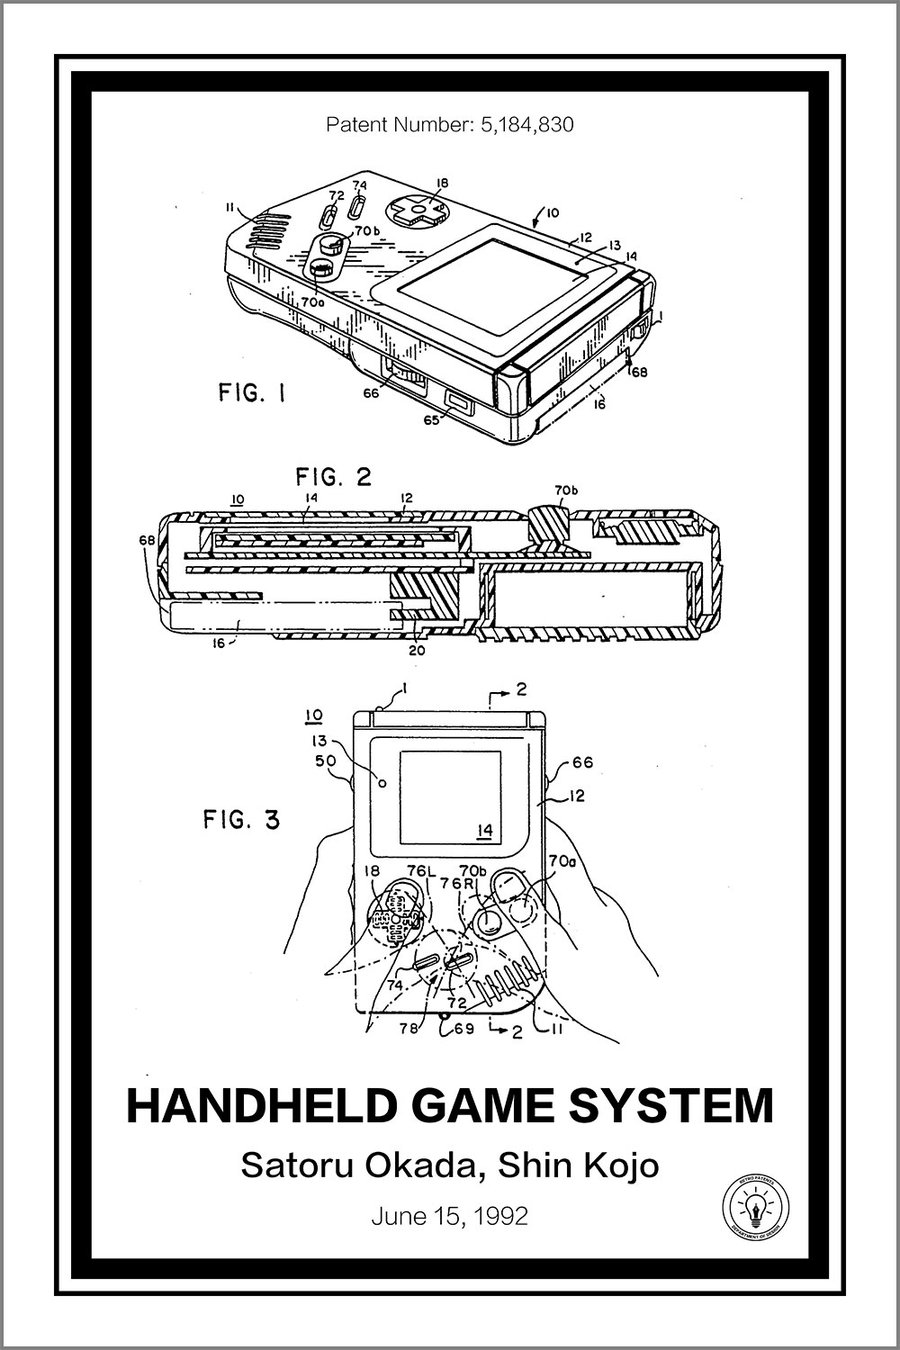 """HANDHELD GAME SYSTEM"" Print from Retro Patents"